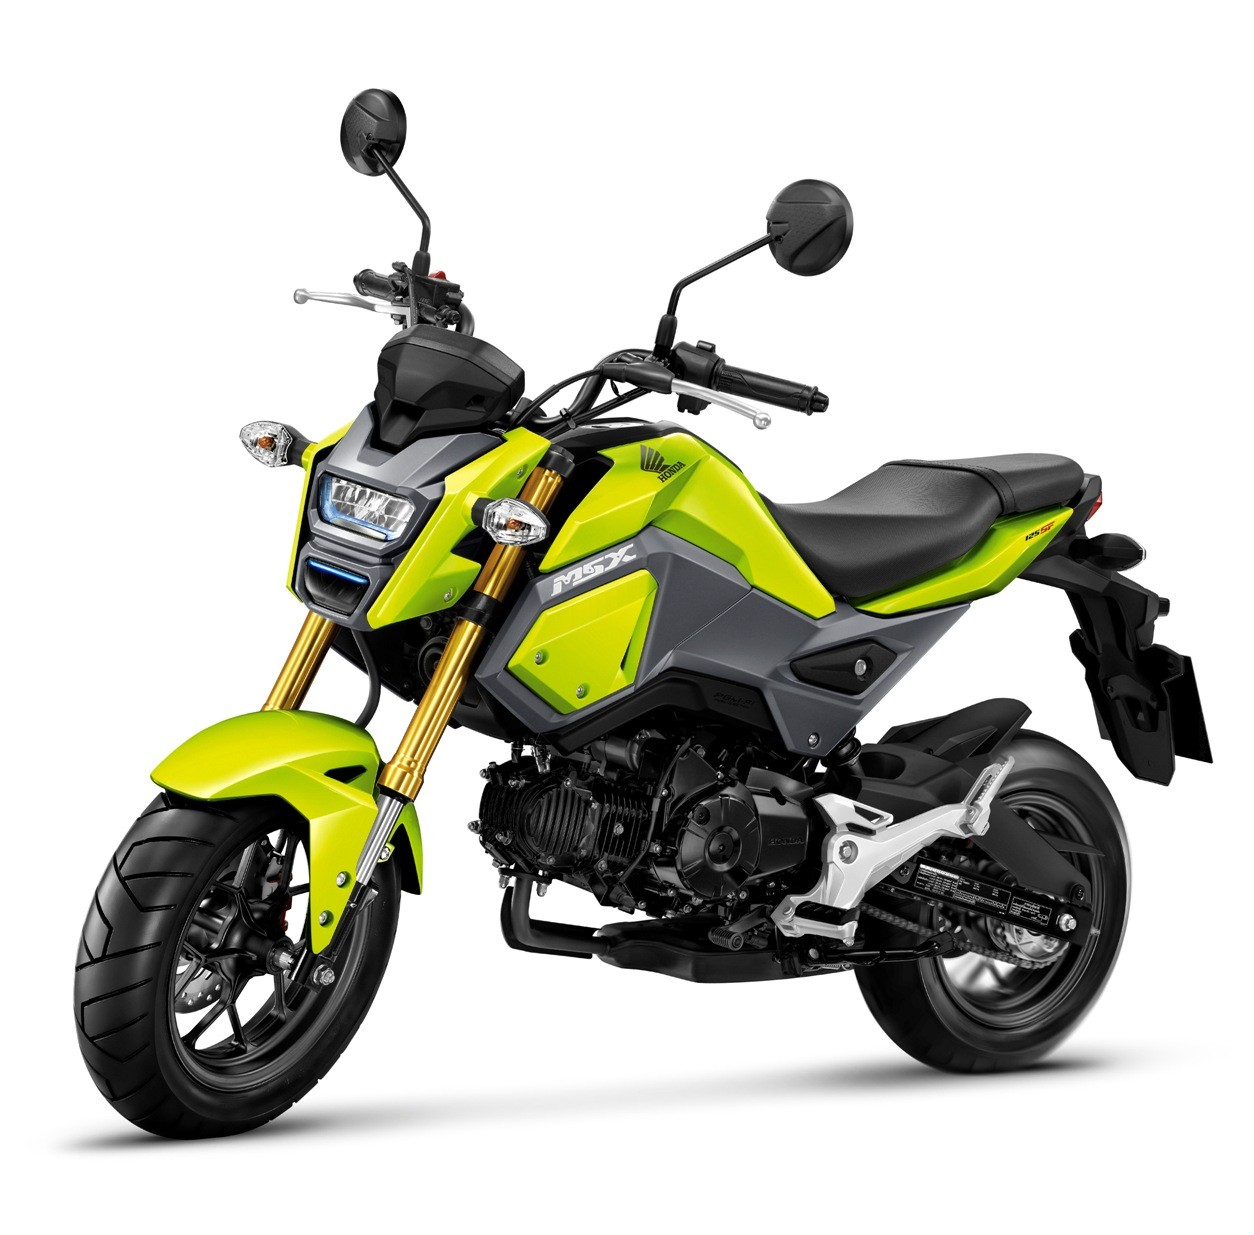 Honda Grom MSX125SF Looks Cool in This 5-Part Video Story ...